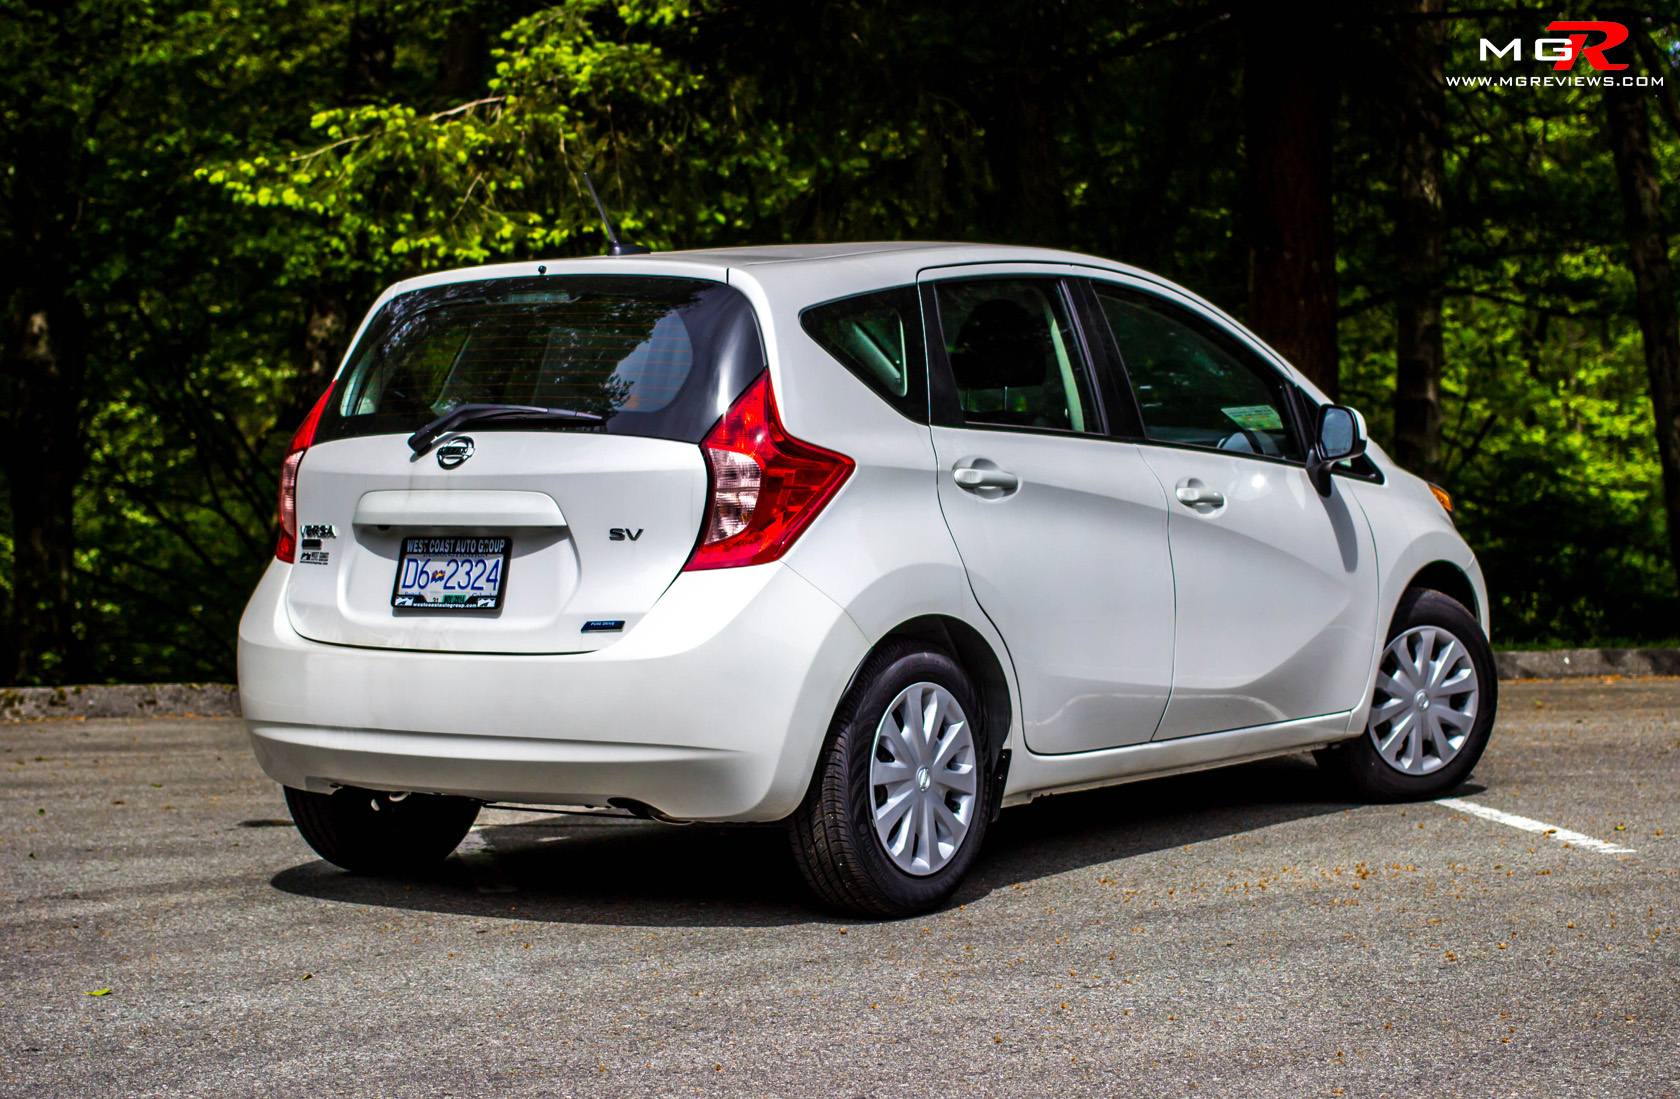 review 2014 nissan versa note m g reviews. Black Bedroom Furniture Sets. Home Design Ideas